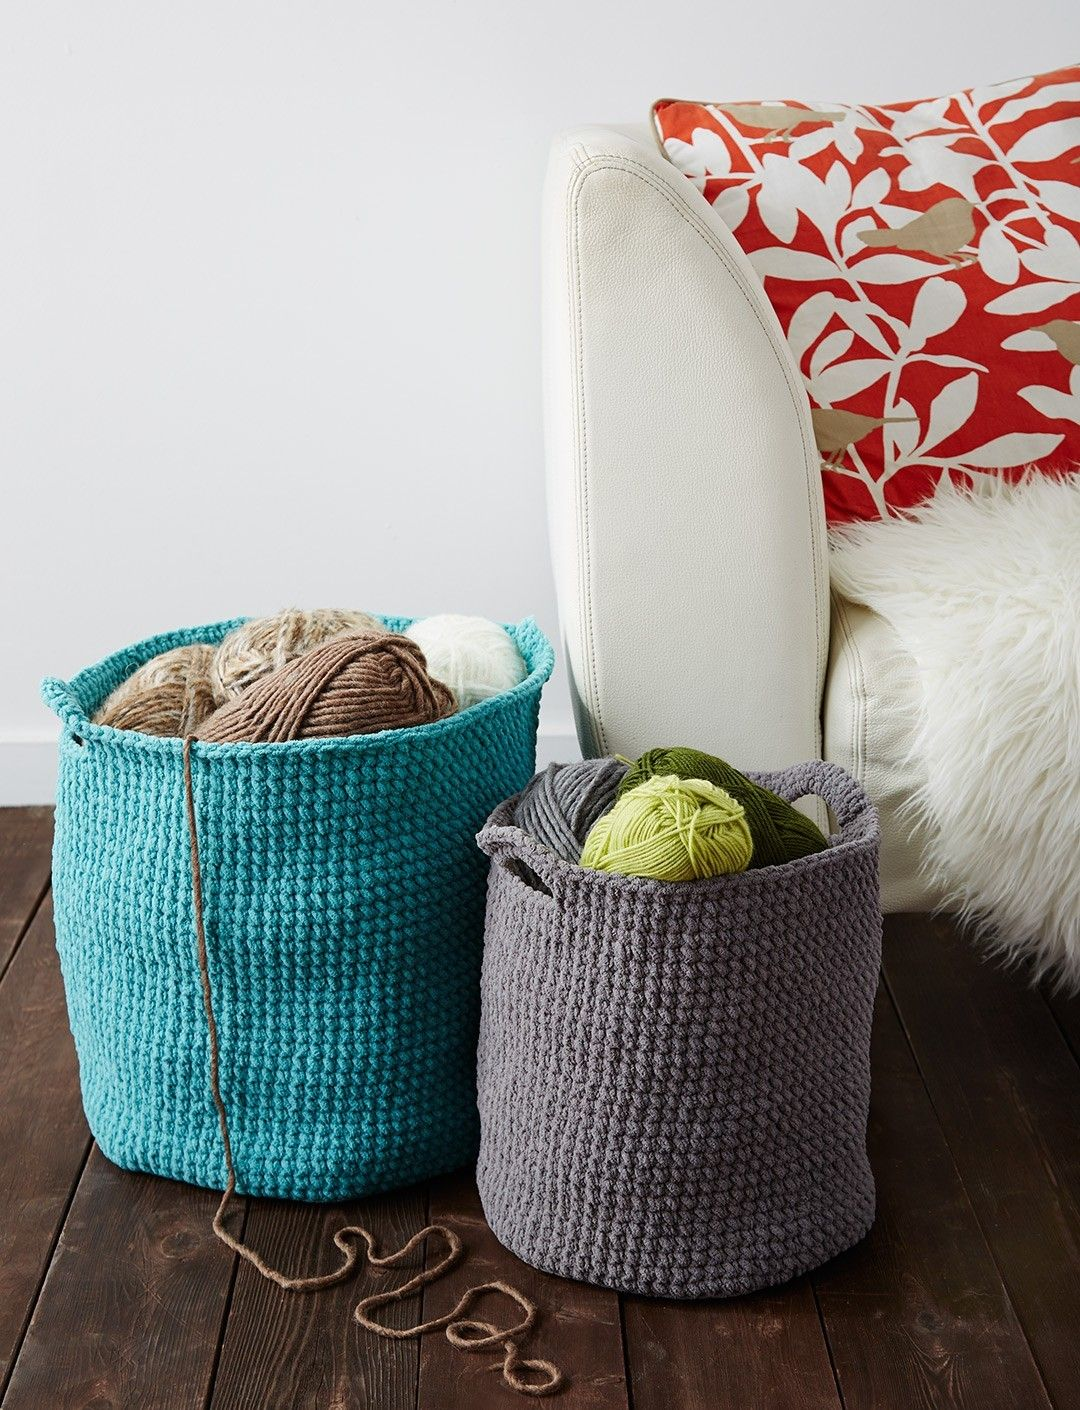 Free Knitting Pattern: Stash Basket in Bernat Blanket http://www.loveknitting...